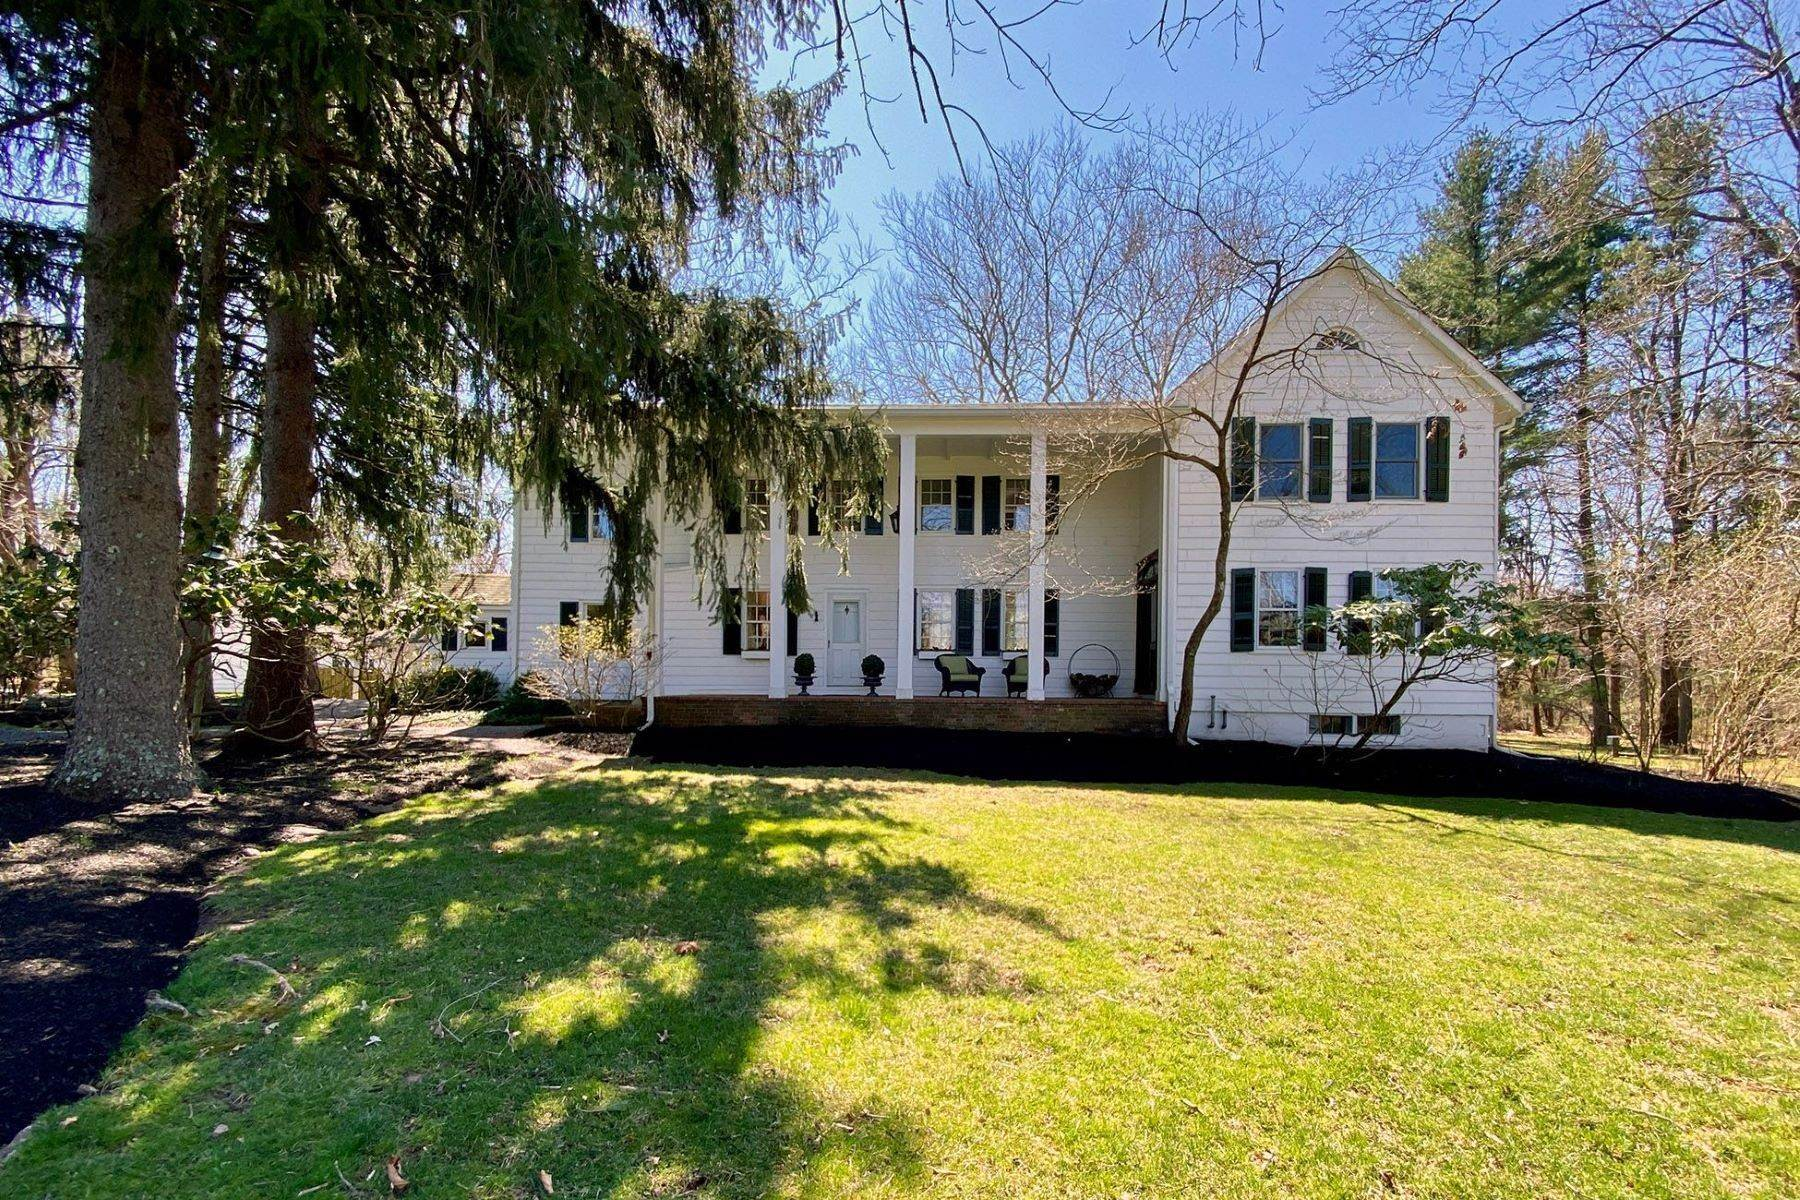 Single Family Homes for Sale at Prepare To Be Enchanted! 58 Titus Mill Road Pennington, New Jersey 08534 United States